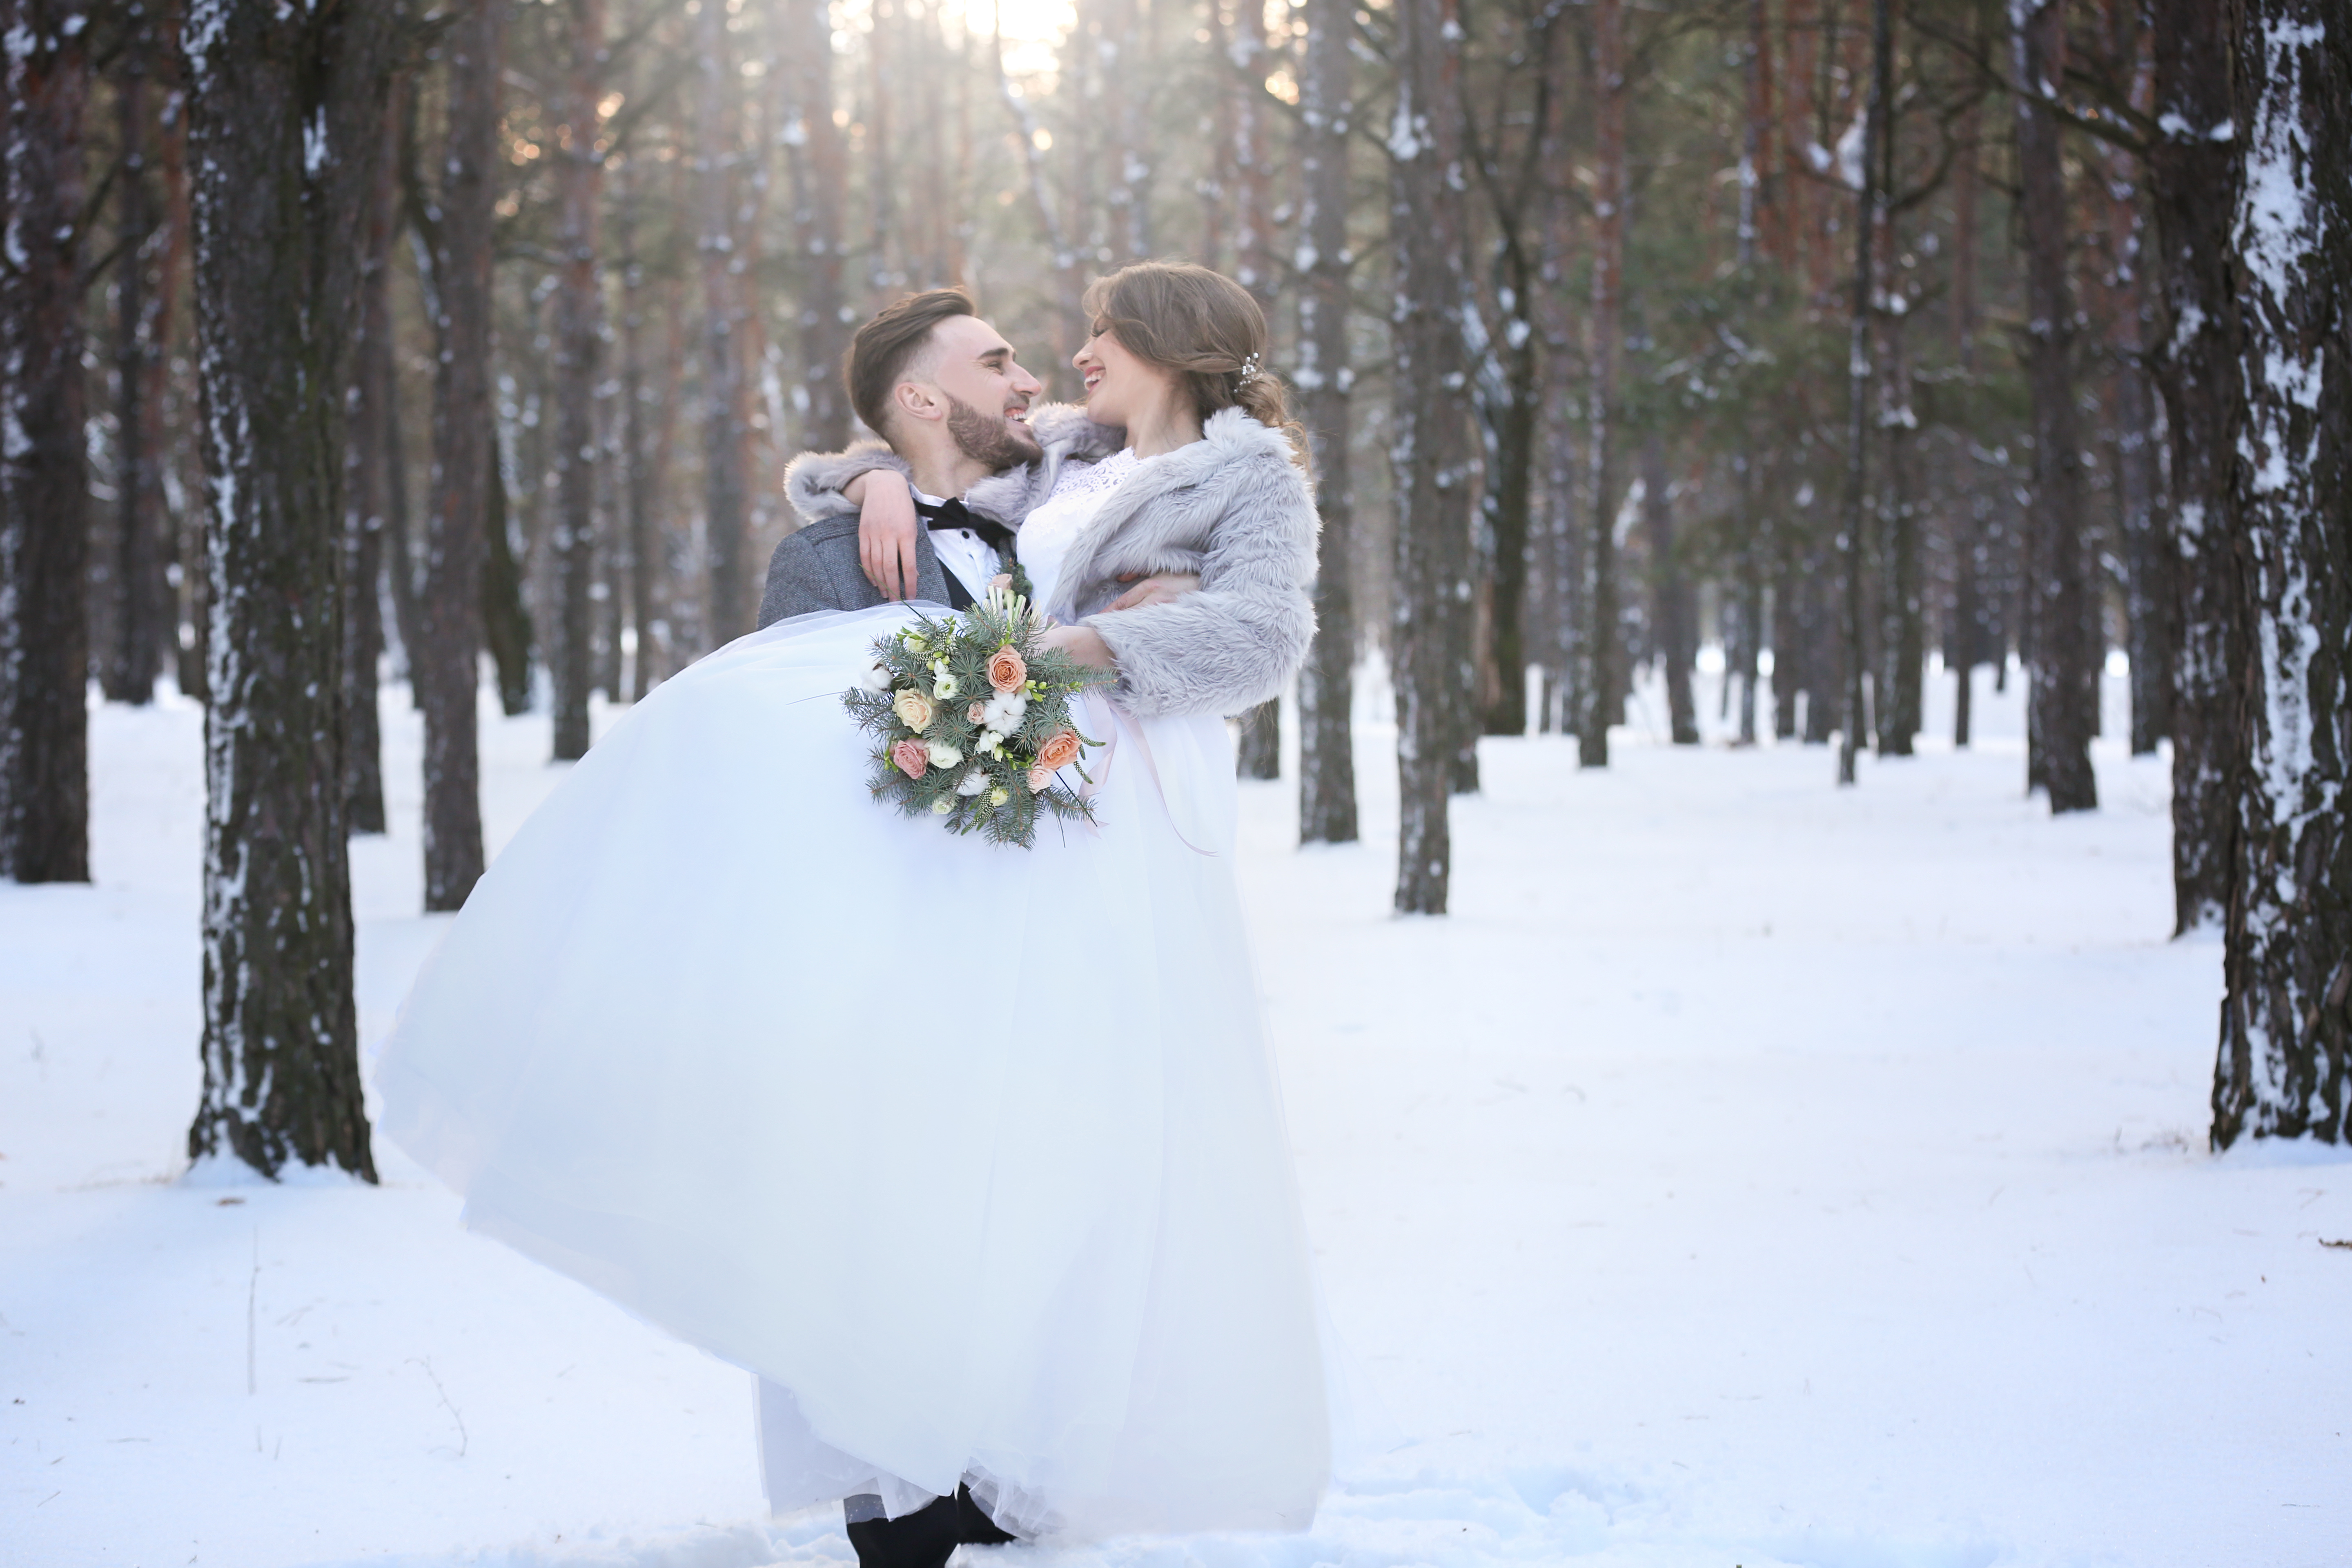 couple embracing in the snow at their winter wedding